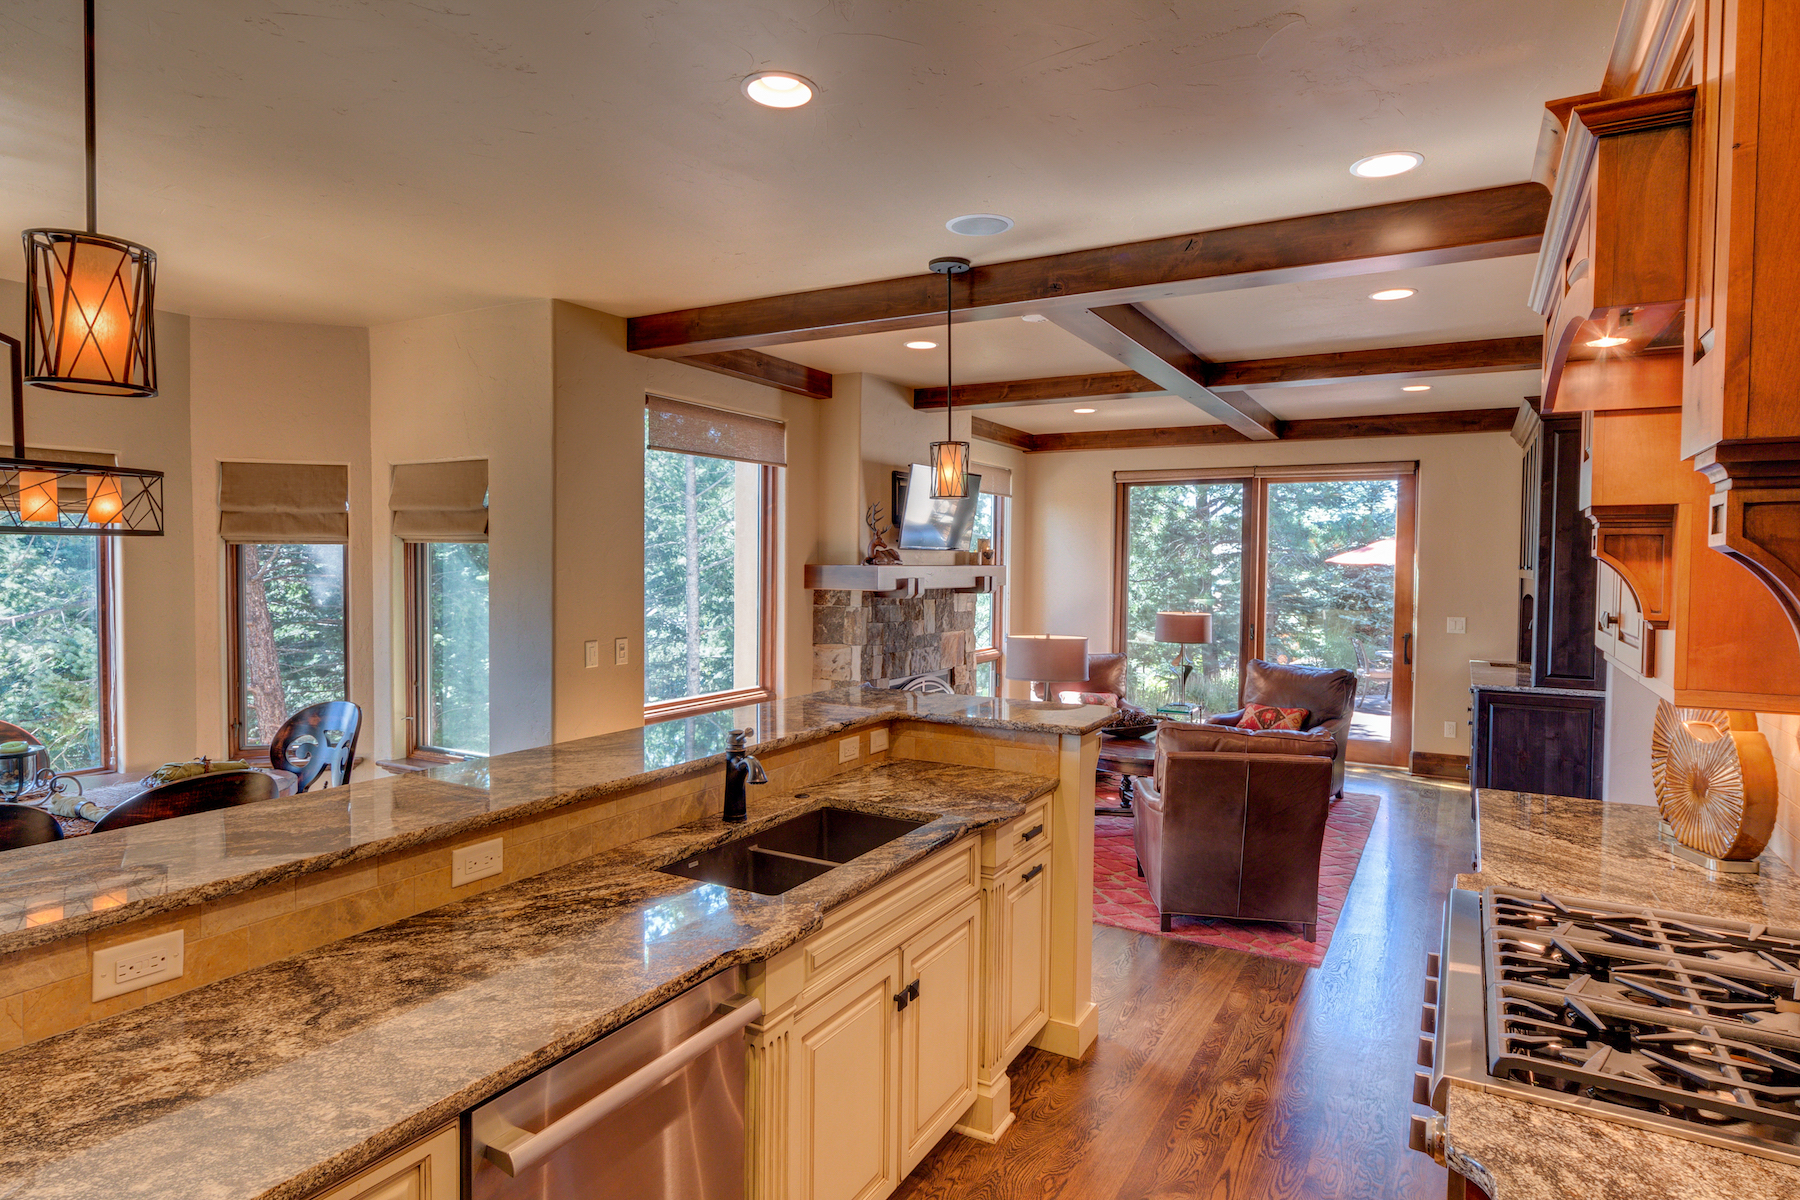 15 - Kitchen with Family Room Beyond.jpg